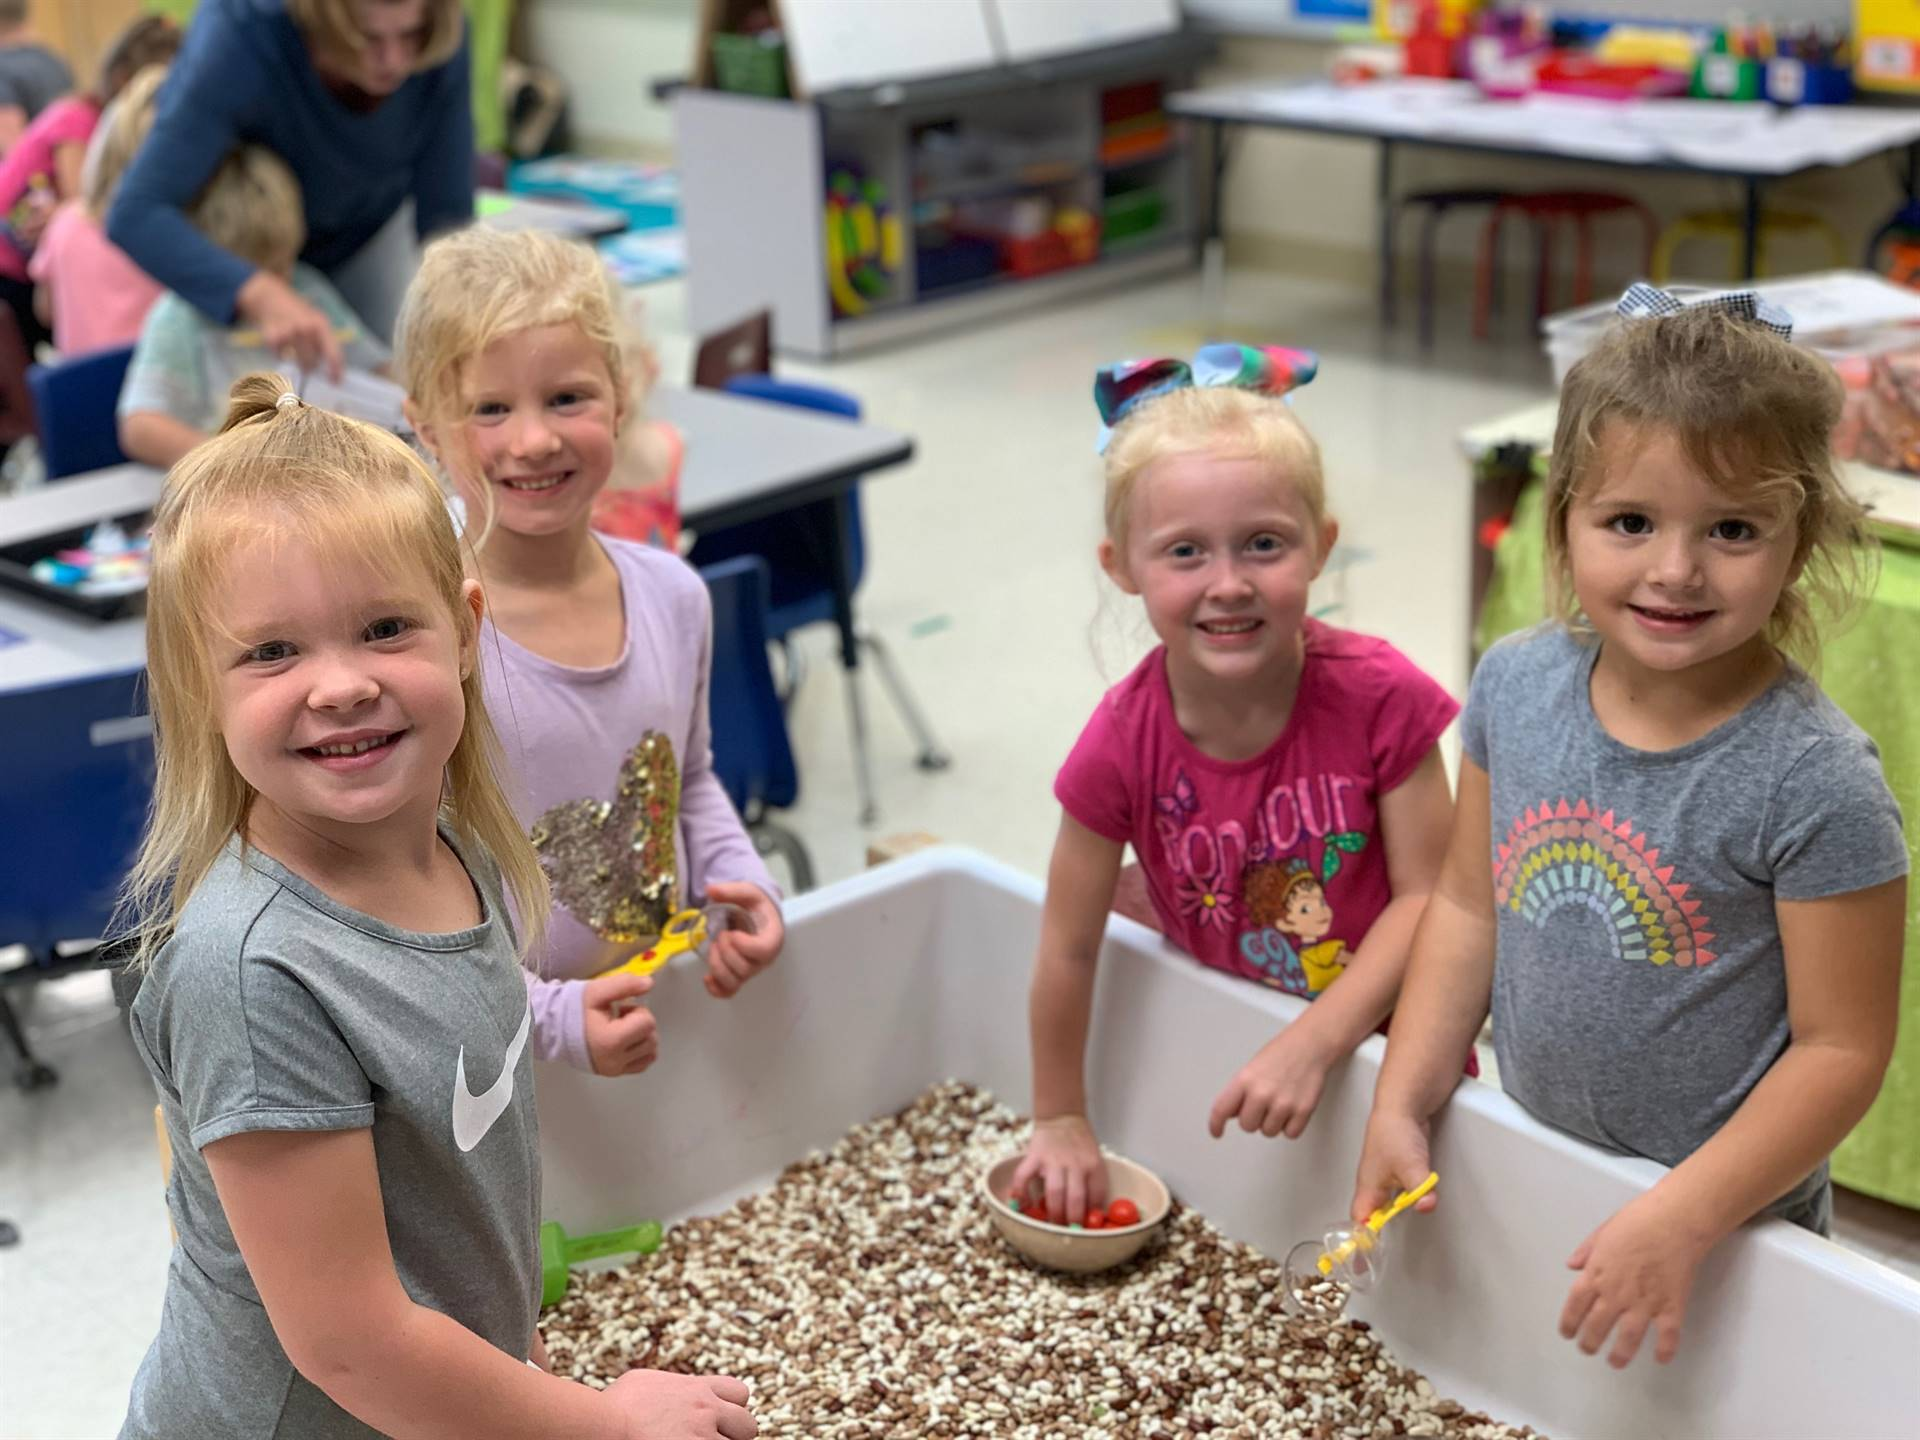 Preschoolers exploring with the sensory table